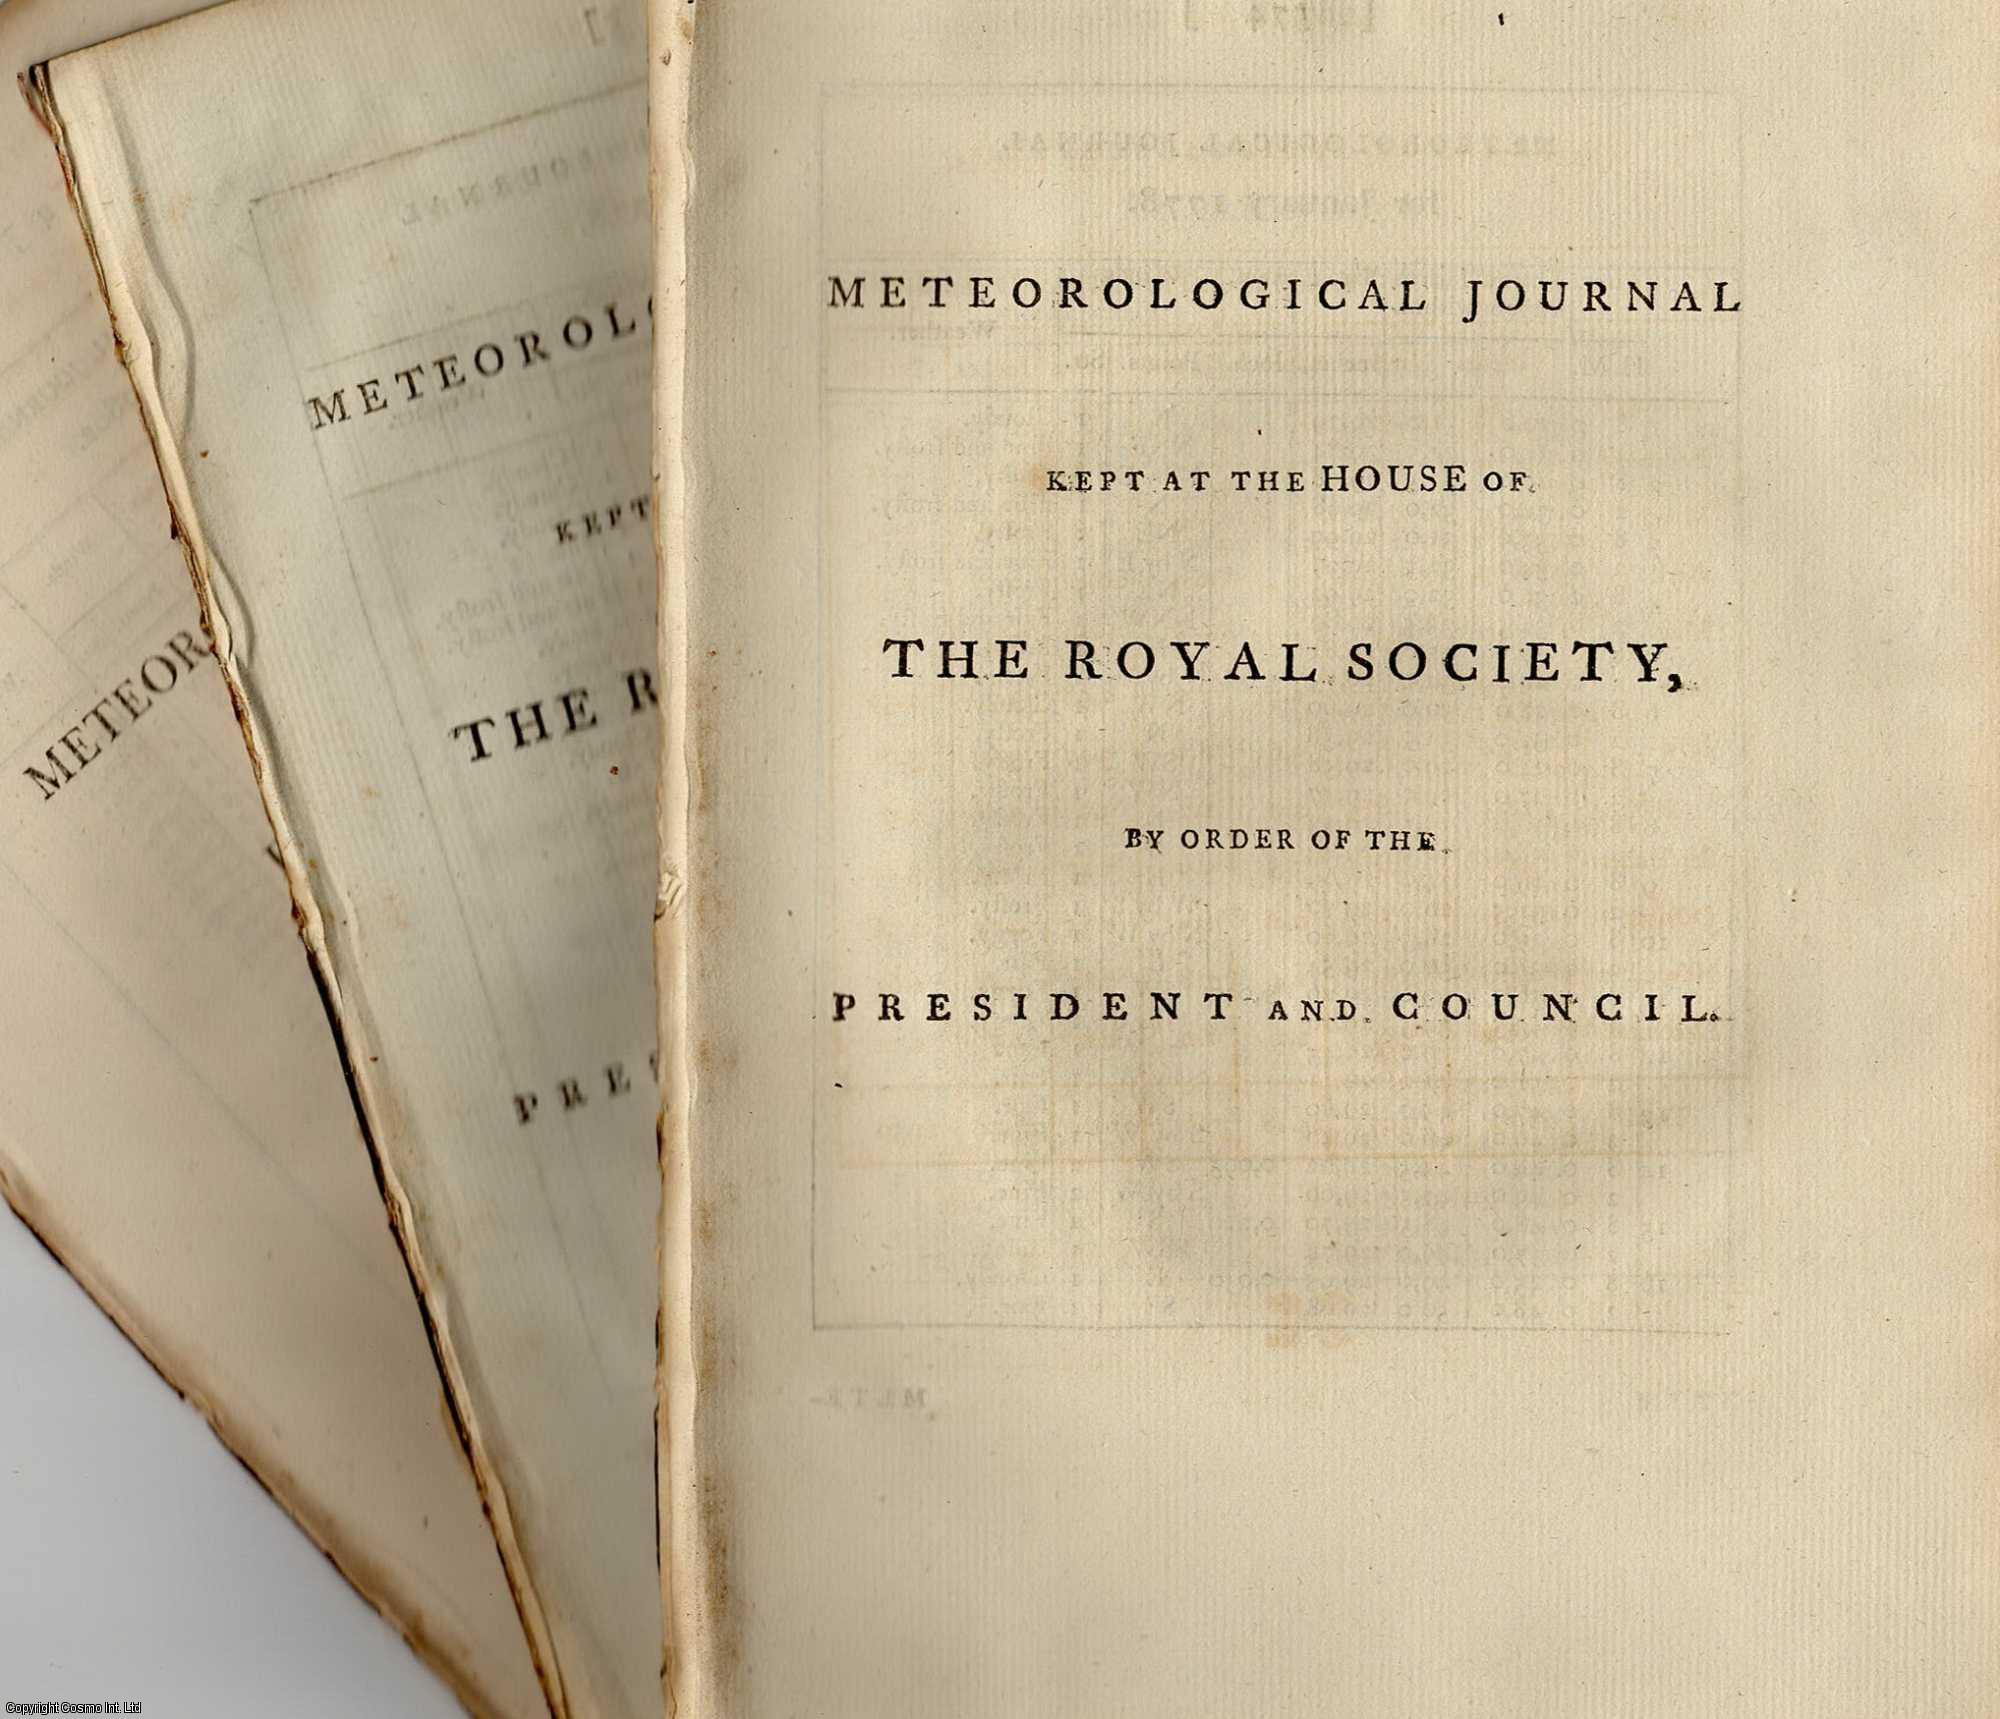 The Meteorological Journal [Rainfall], Kept at the Apartments of the Royal Society. For the years c.1769 - c.1870., [Royal Society].